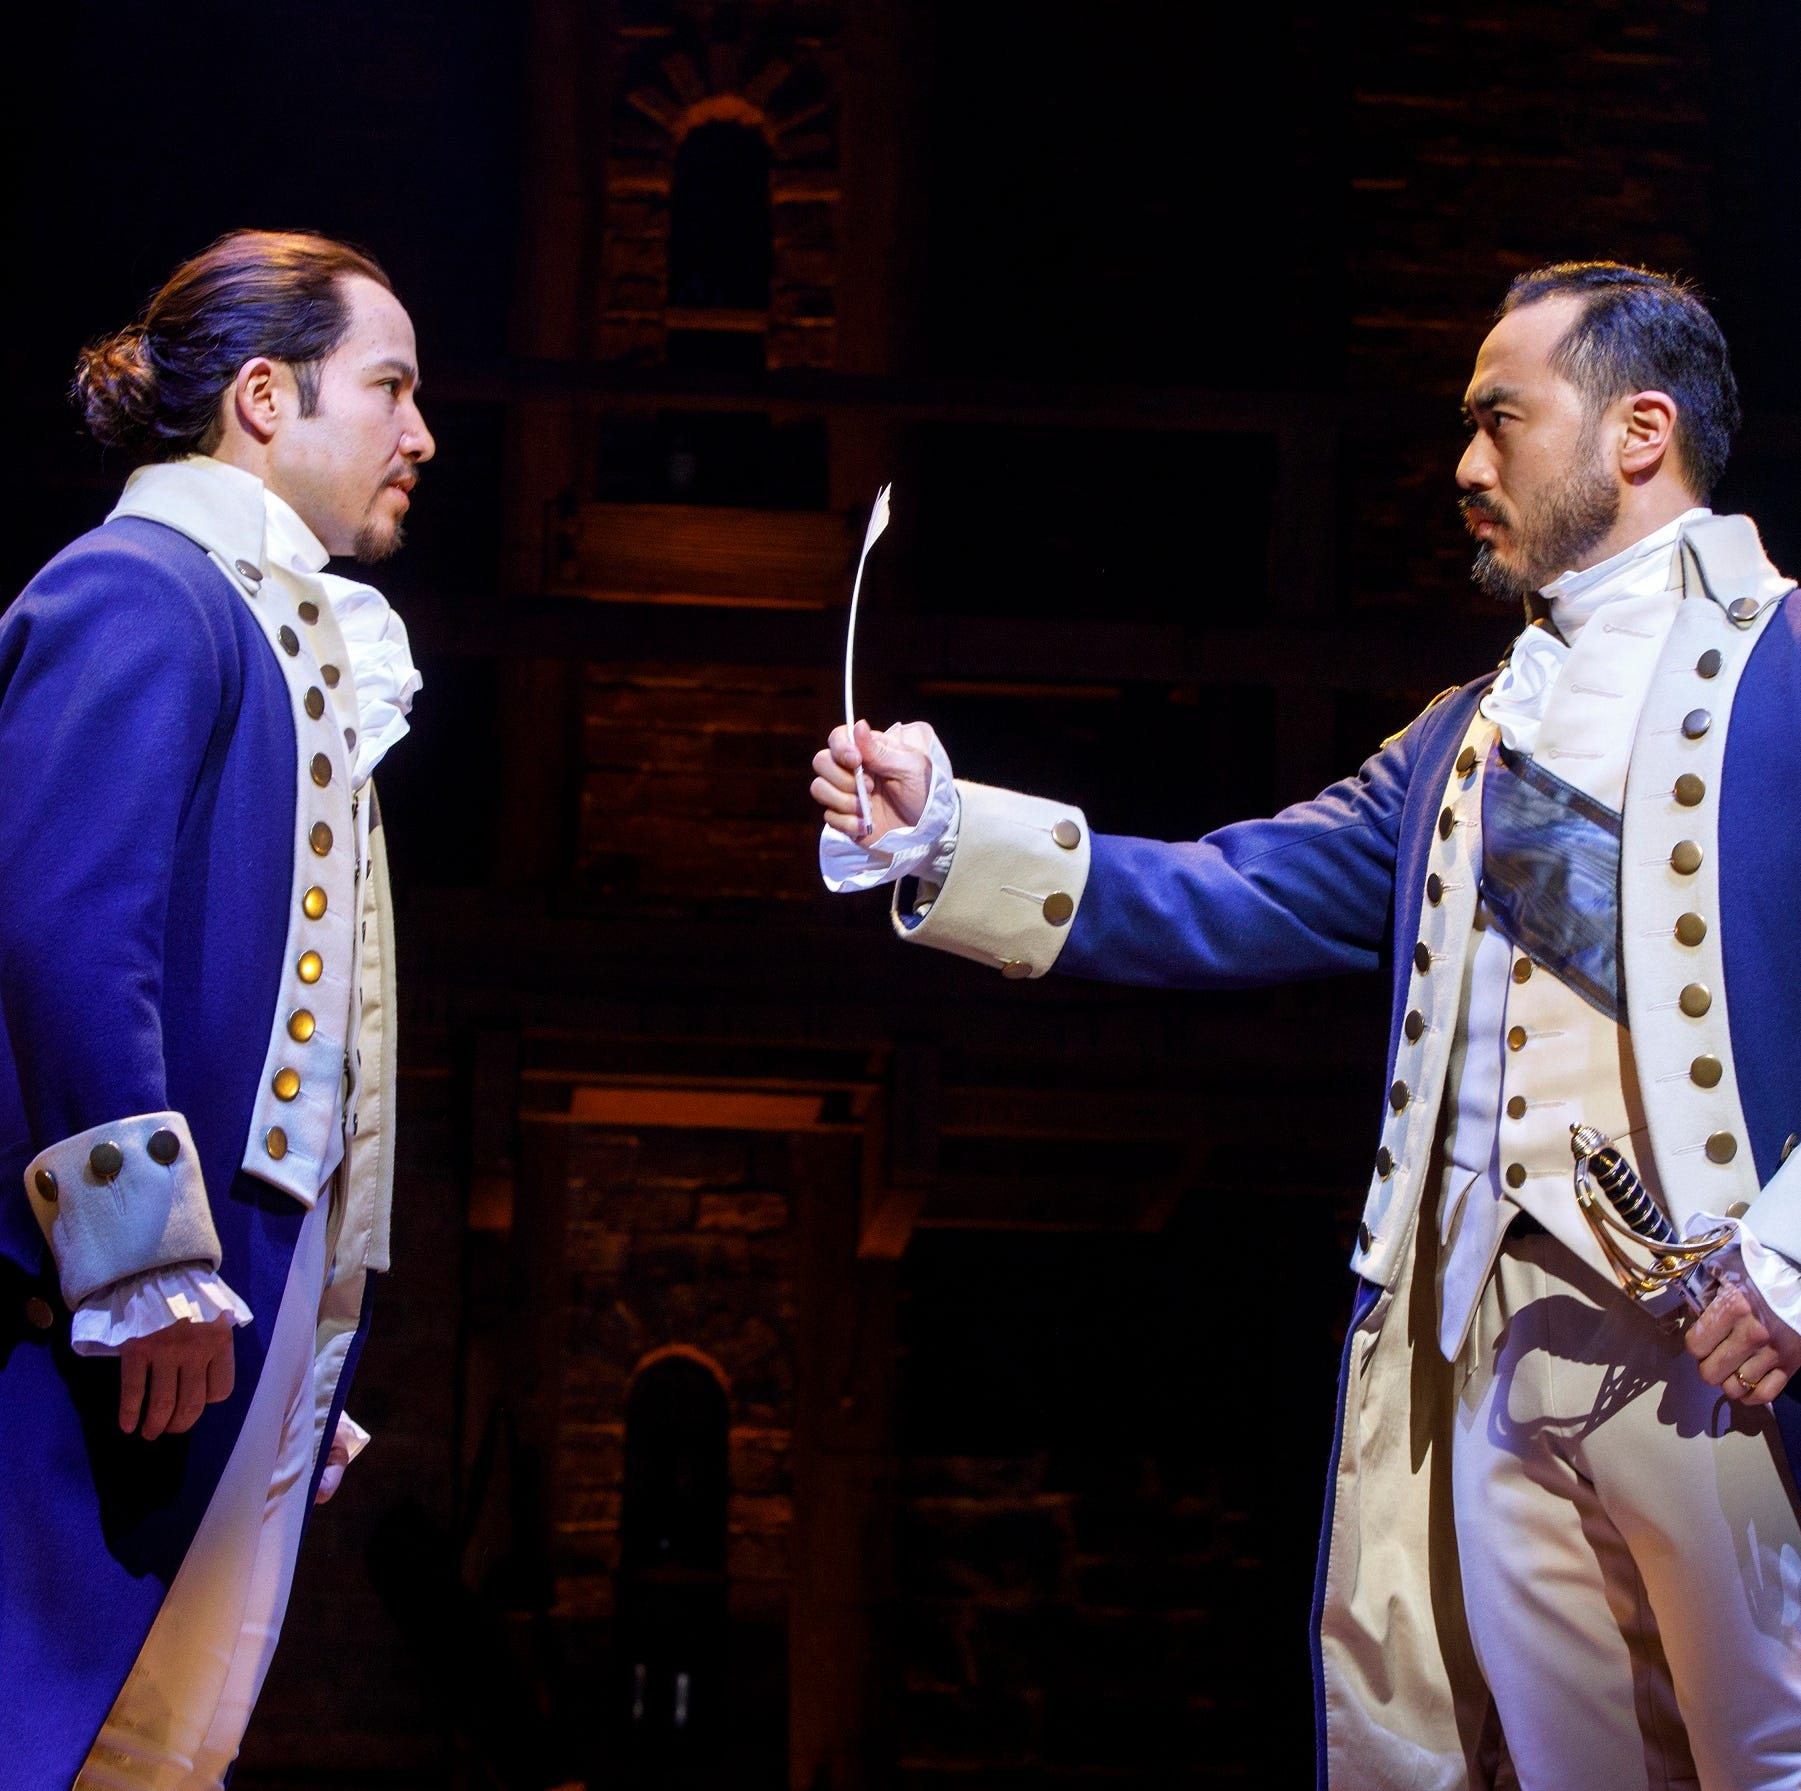 'Hamilton' tickets from secondary markets cost as much as $3,500